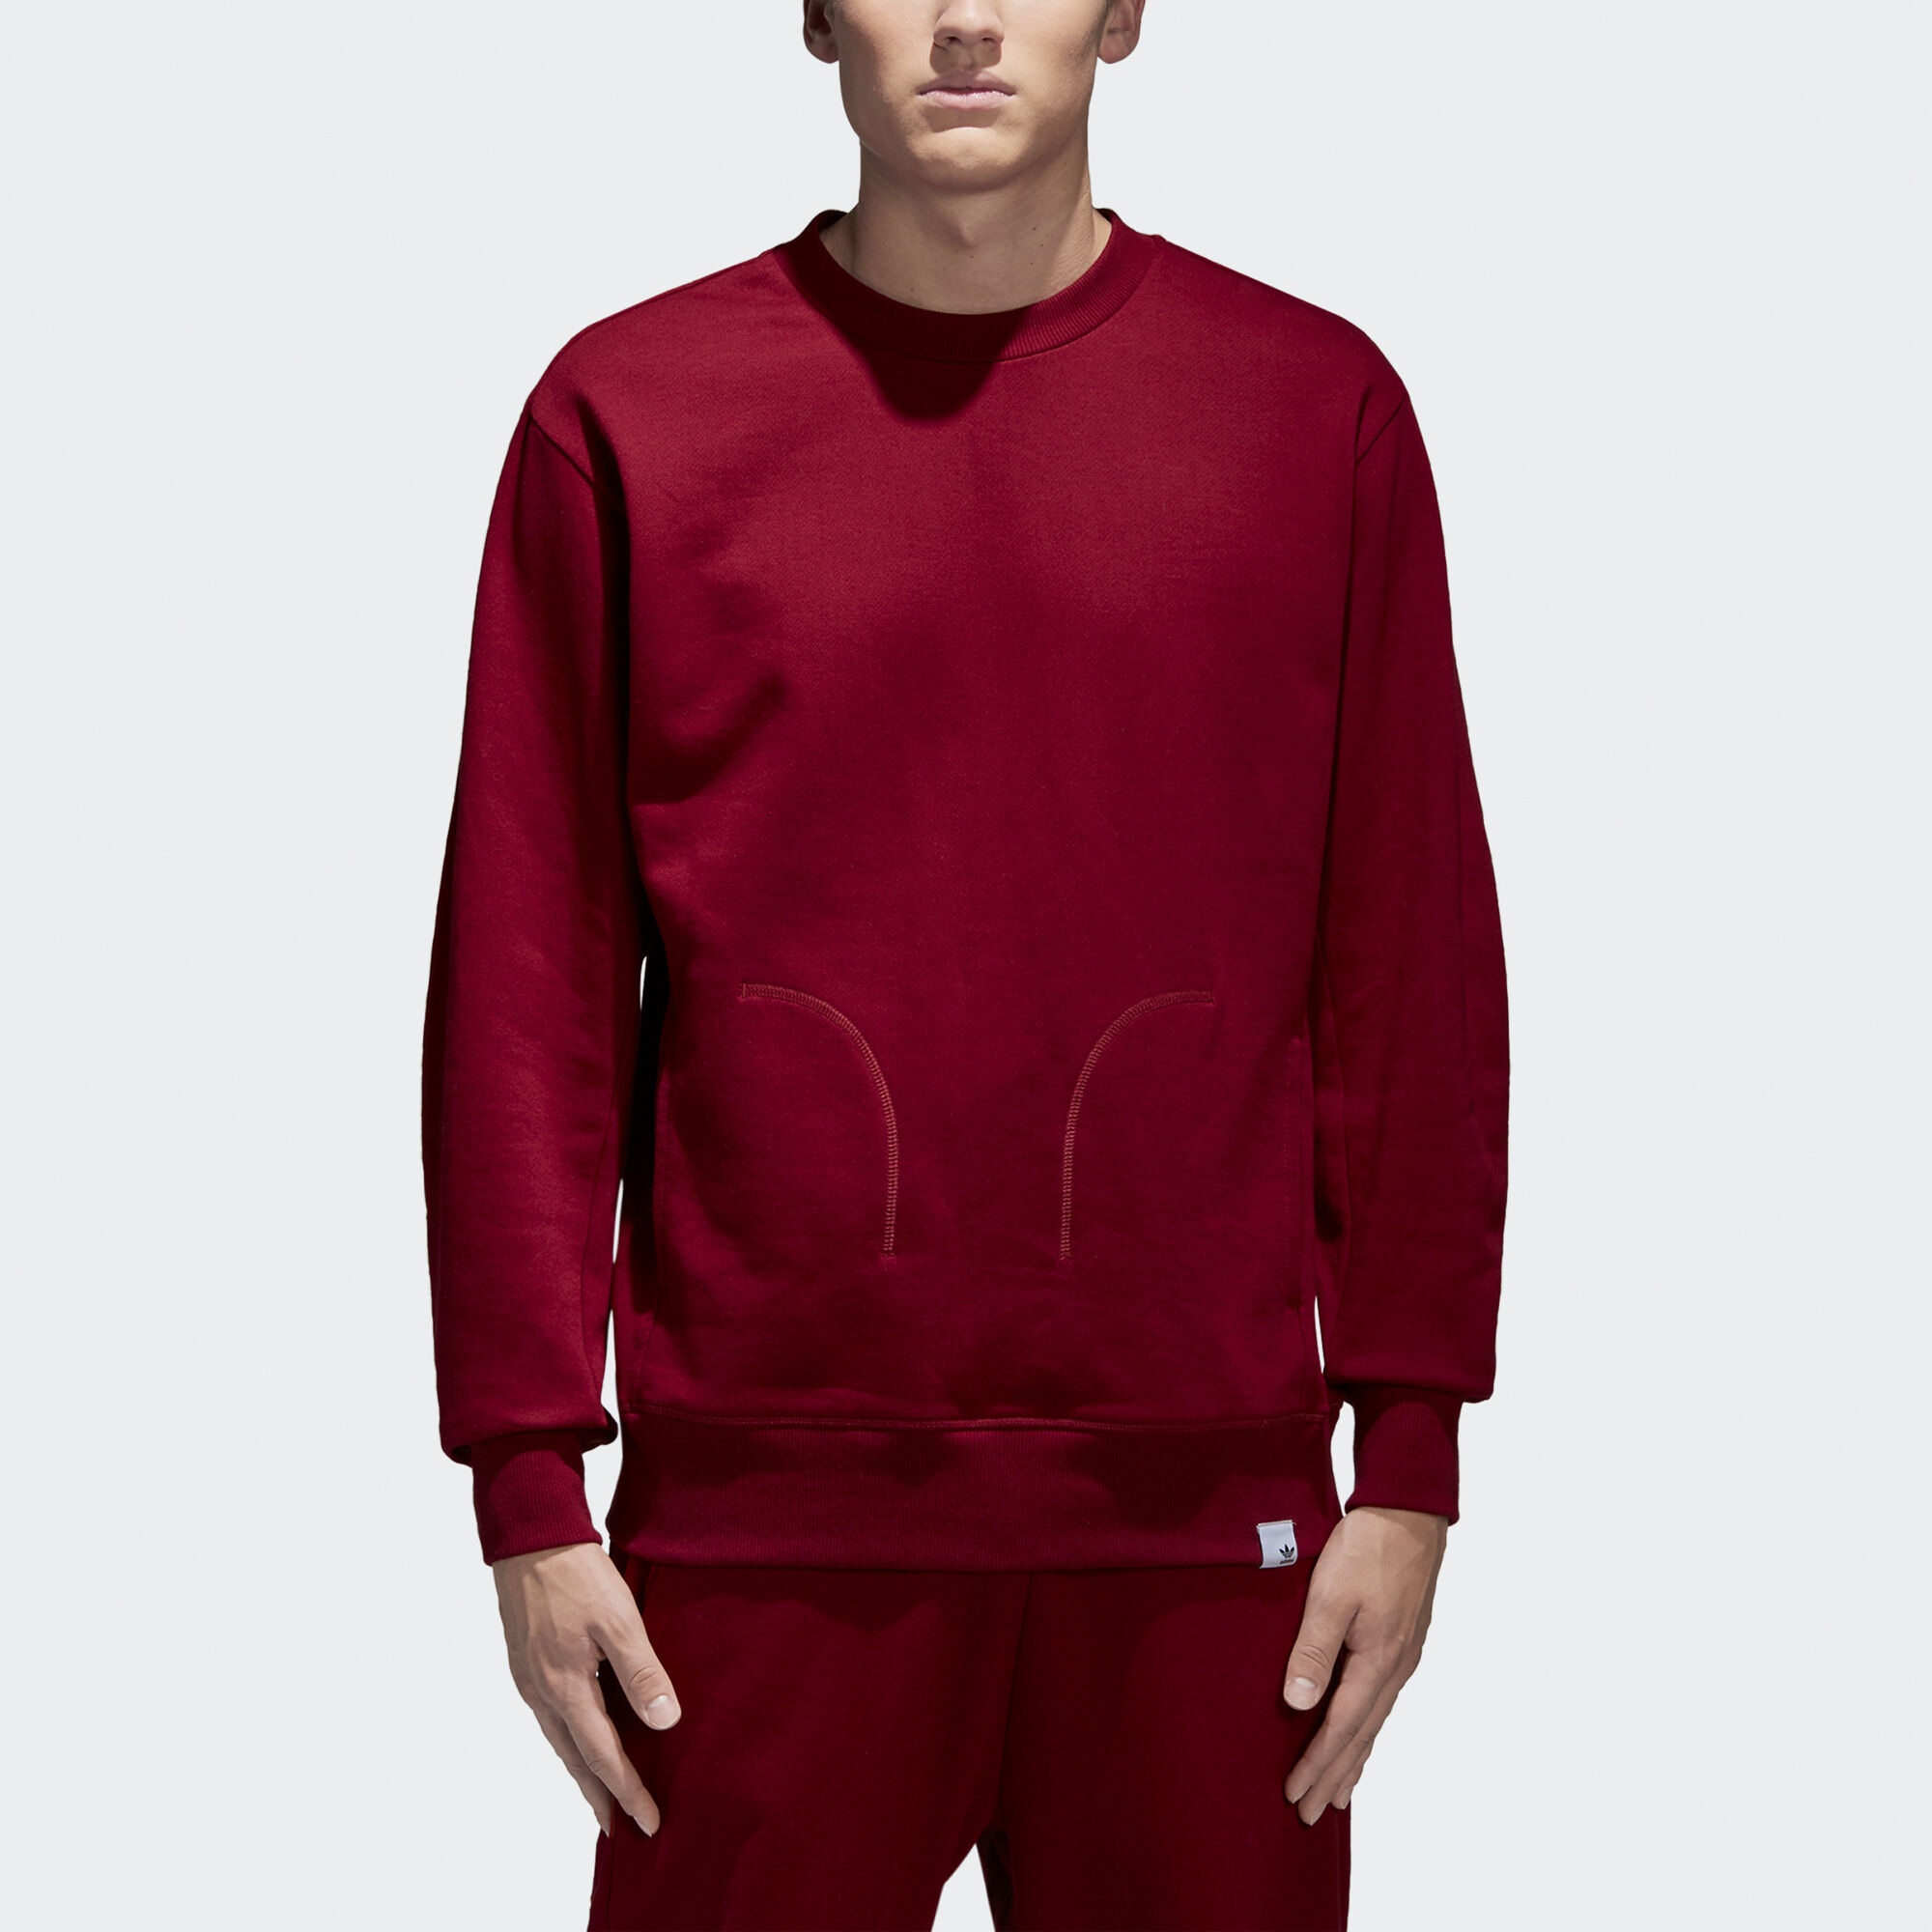 a6df3198d3c7 Buy adidas red sweater   OFF78% Discounted